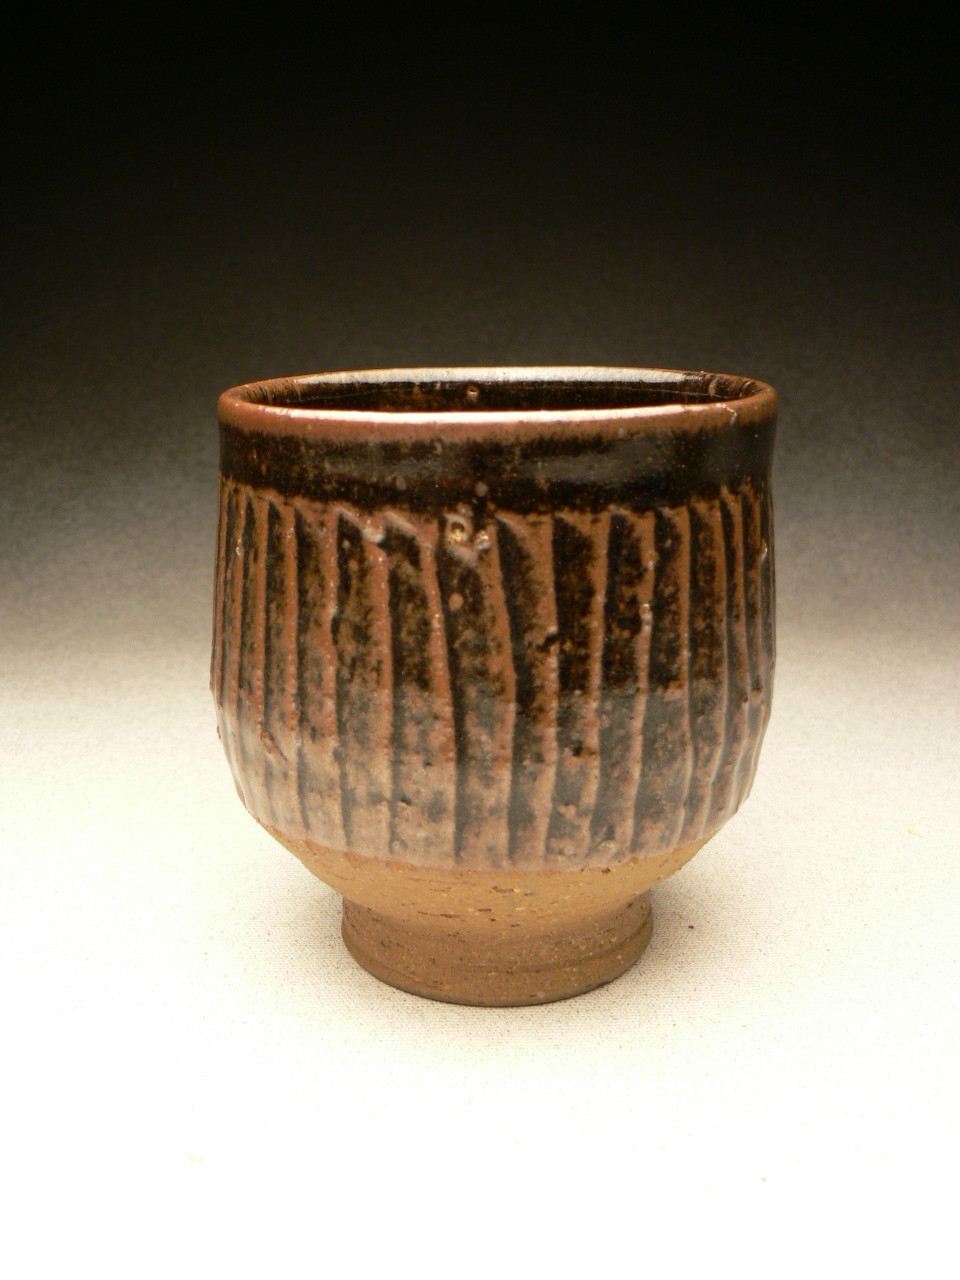 MIREK SMISEK - VINTAGE YUNOMI, STONEWARE, FLUTED, BROWN-BLACK TENMOKU GLAZE, POTTER'S STAMP - 9.5cmH x 8.5cmD, 0.2kg - NZ$110 - #MSR4.....SOLD